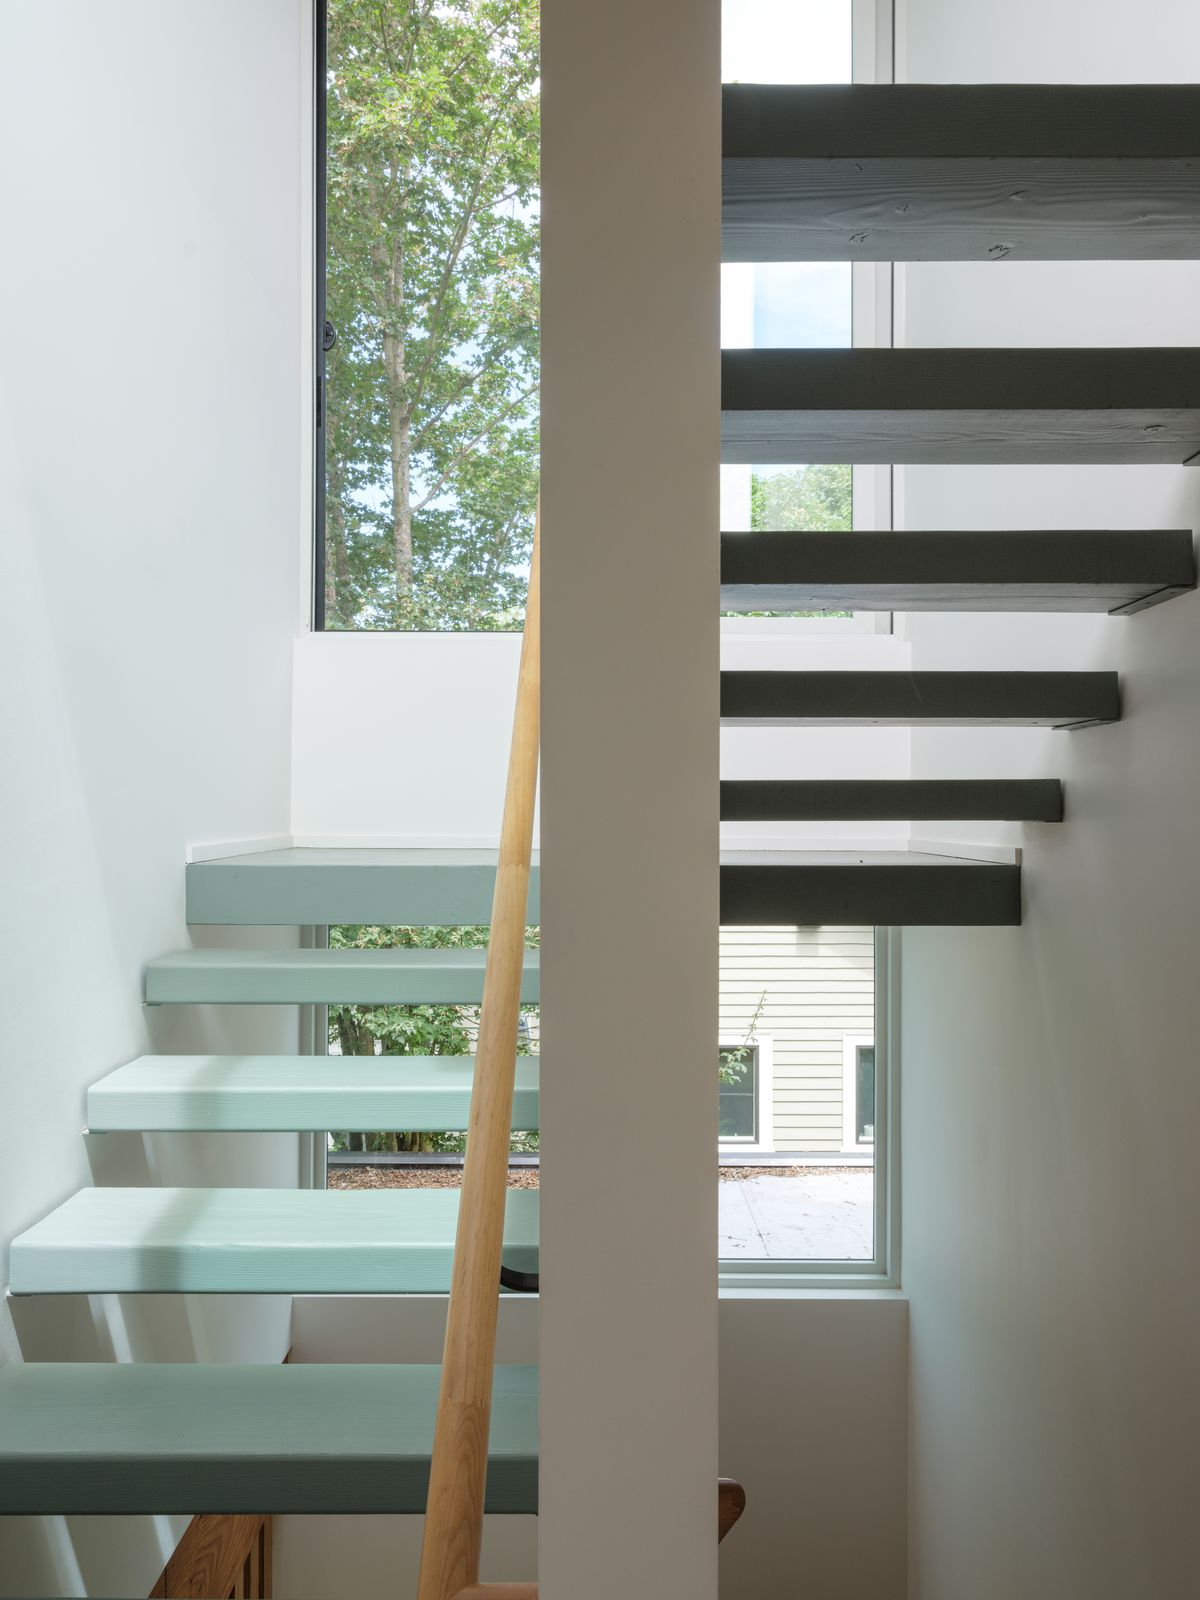 A white stairwell with a set of tall windows. The stairs are light blue. There is a wooden bannister.